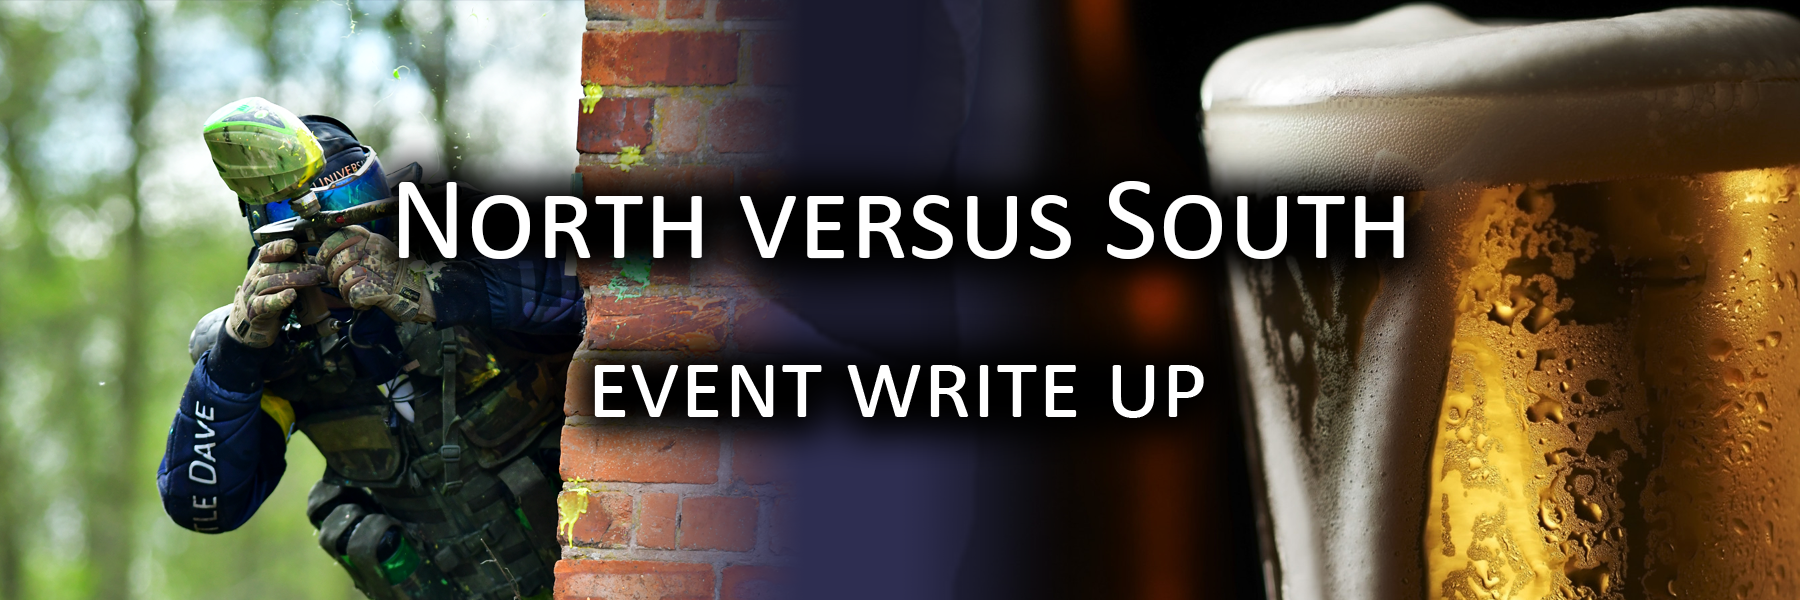 North versus South writeup